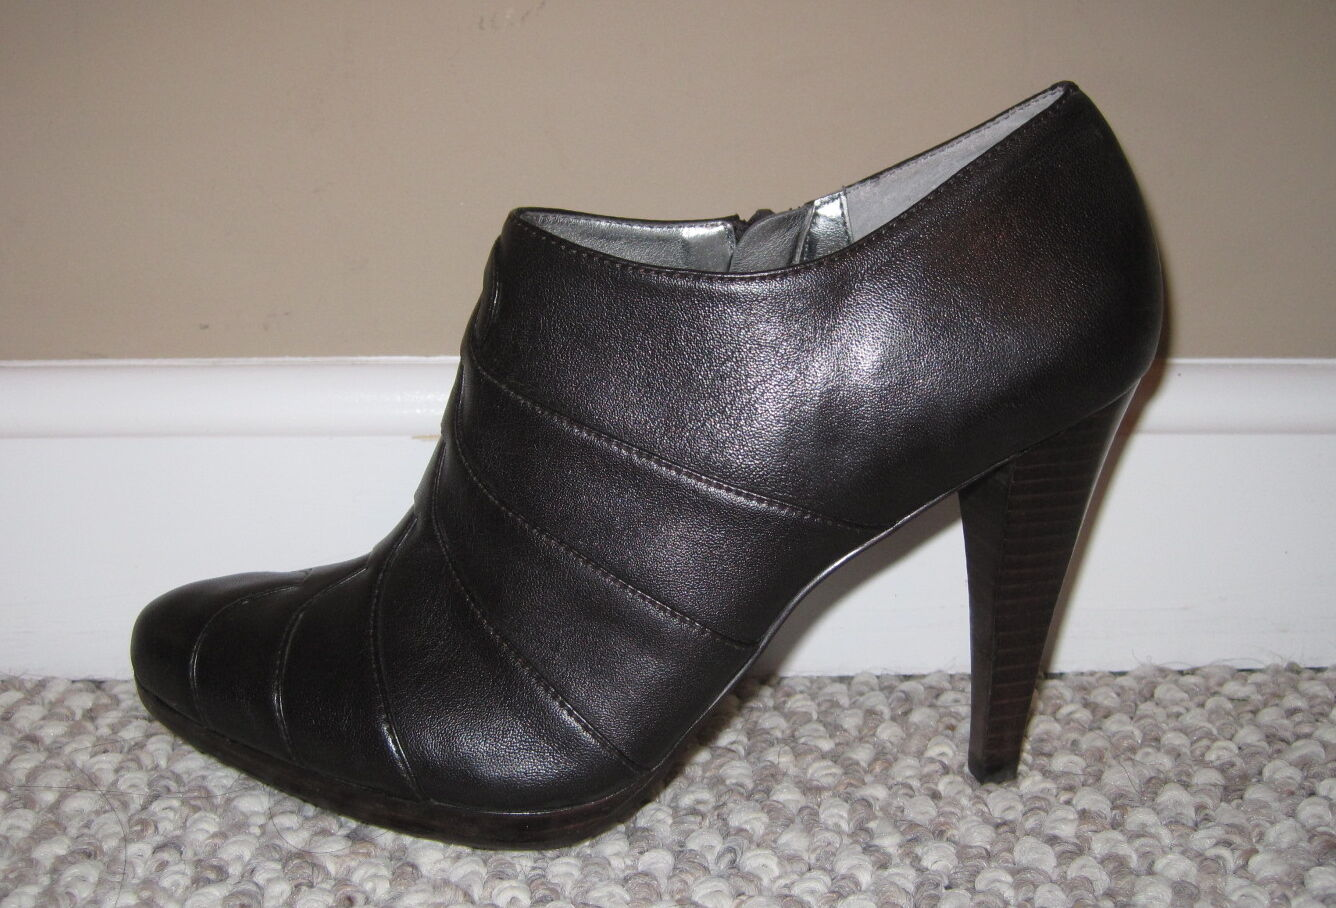 CALVIN KLEIN BEVERLY BROWN LEATHER 6.5 ZIPPER ANKLE BOOTS